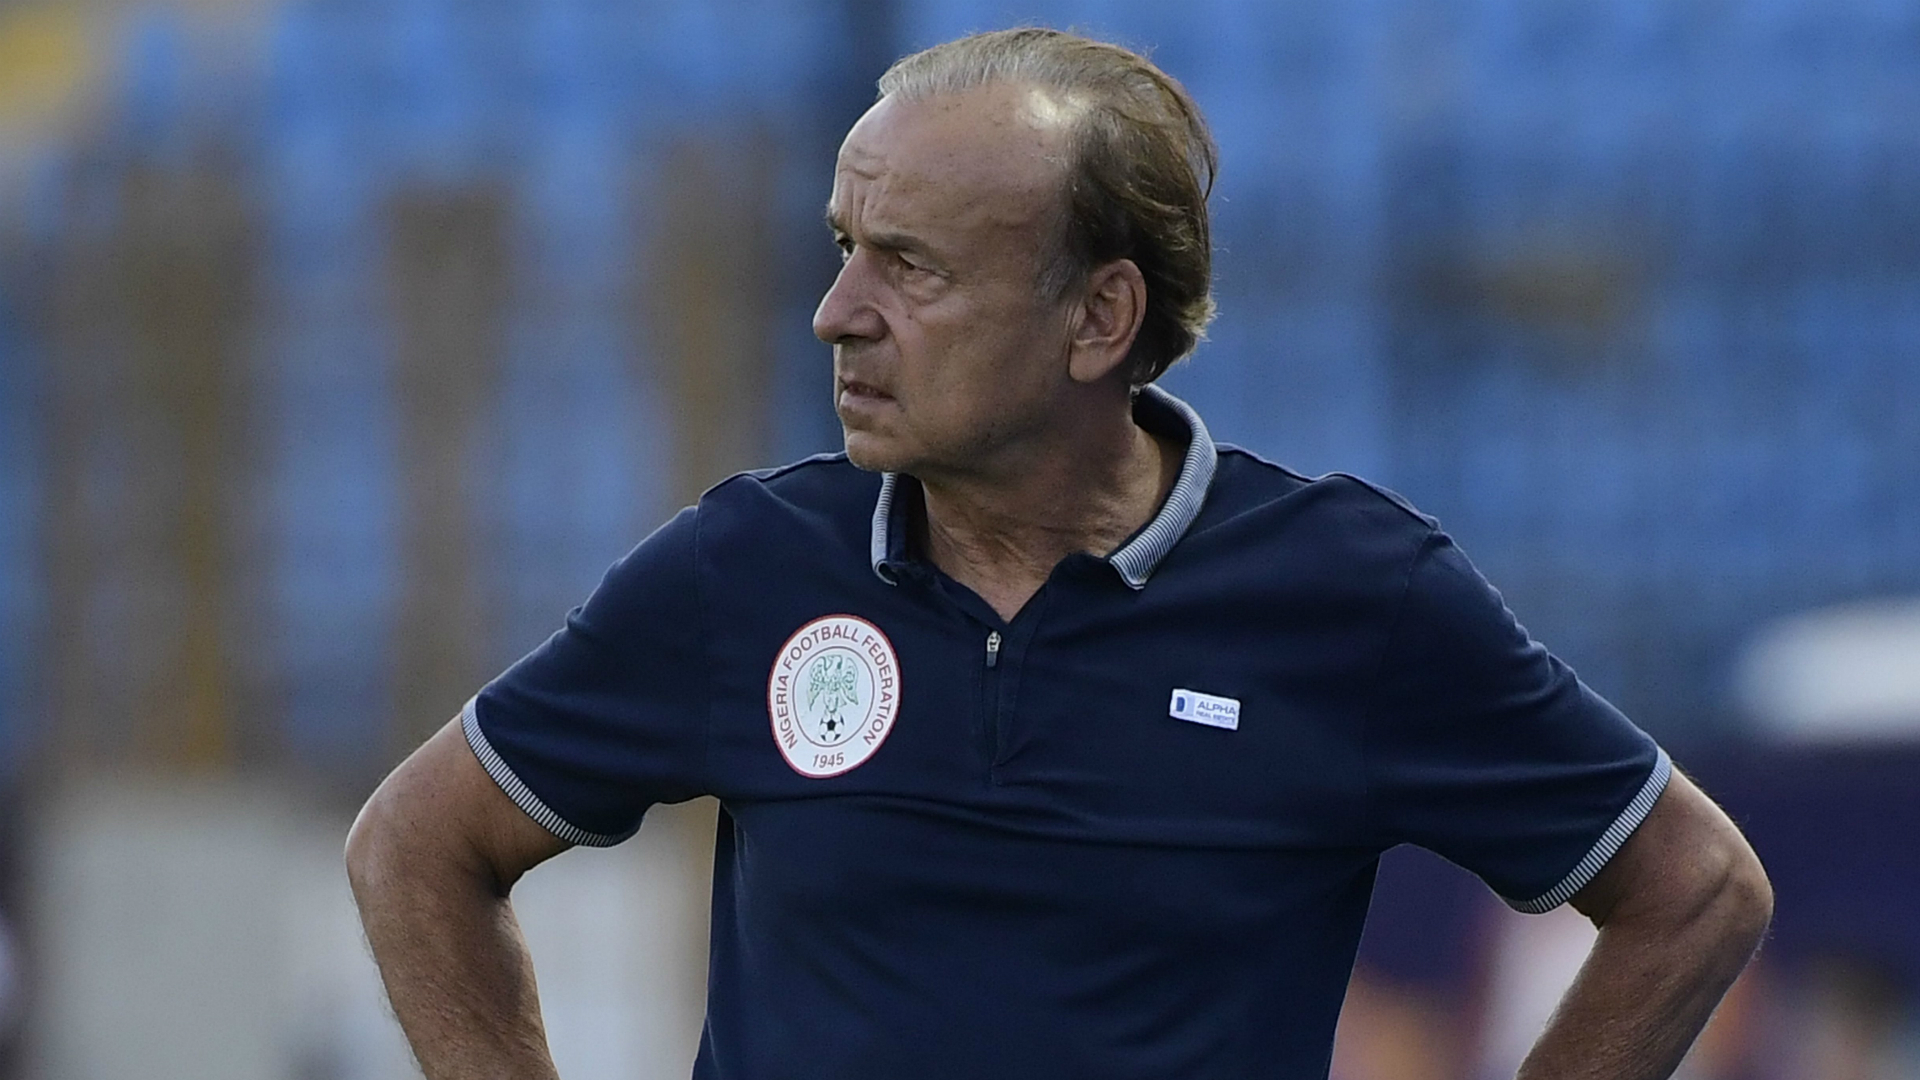 NFF can terminate Rohr's contract if he fails to meet targets - Sports Minister